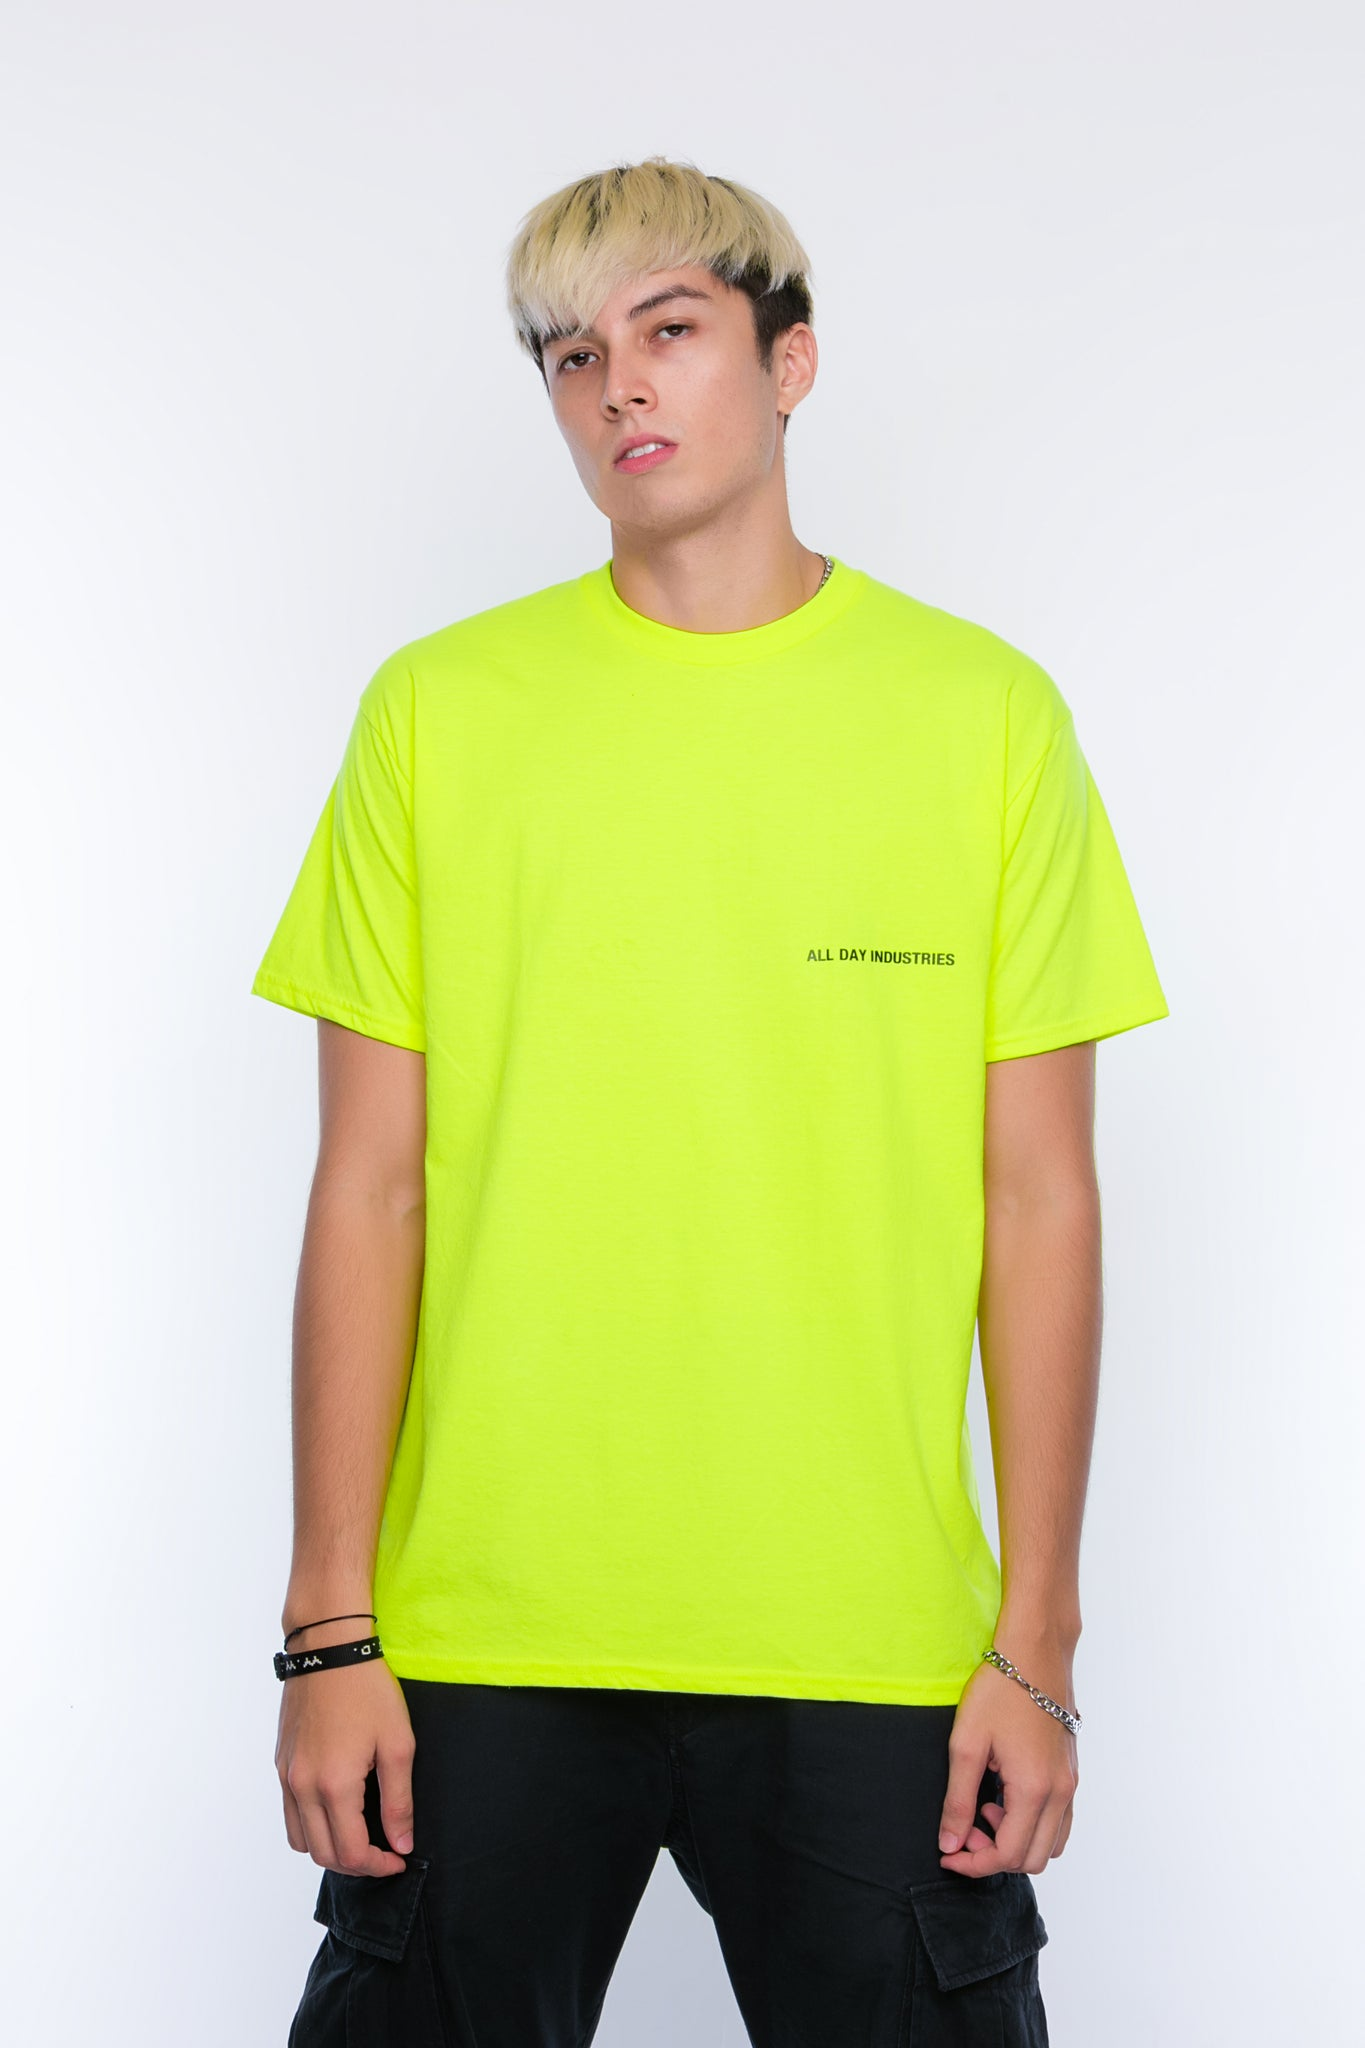 ALL DAY INDUSTRIES LOGO SHIRT - (Galaxy Green)